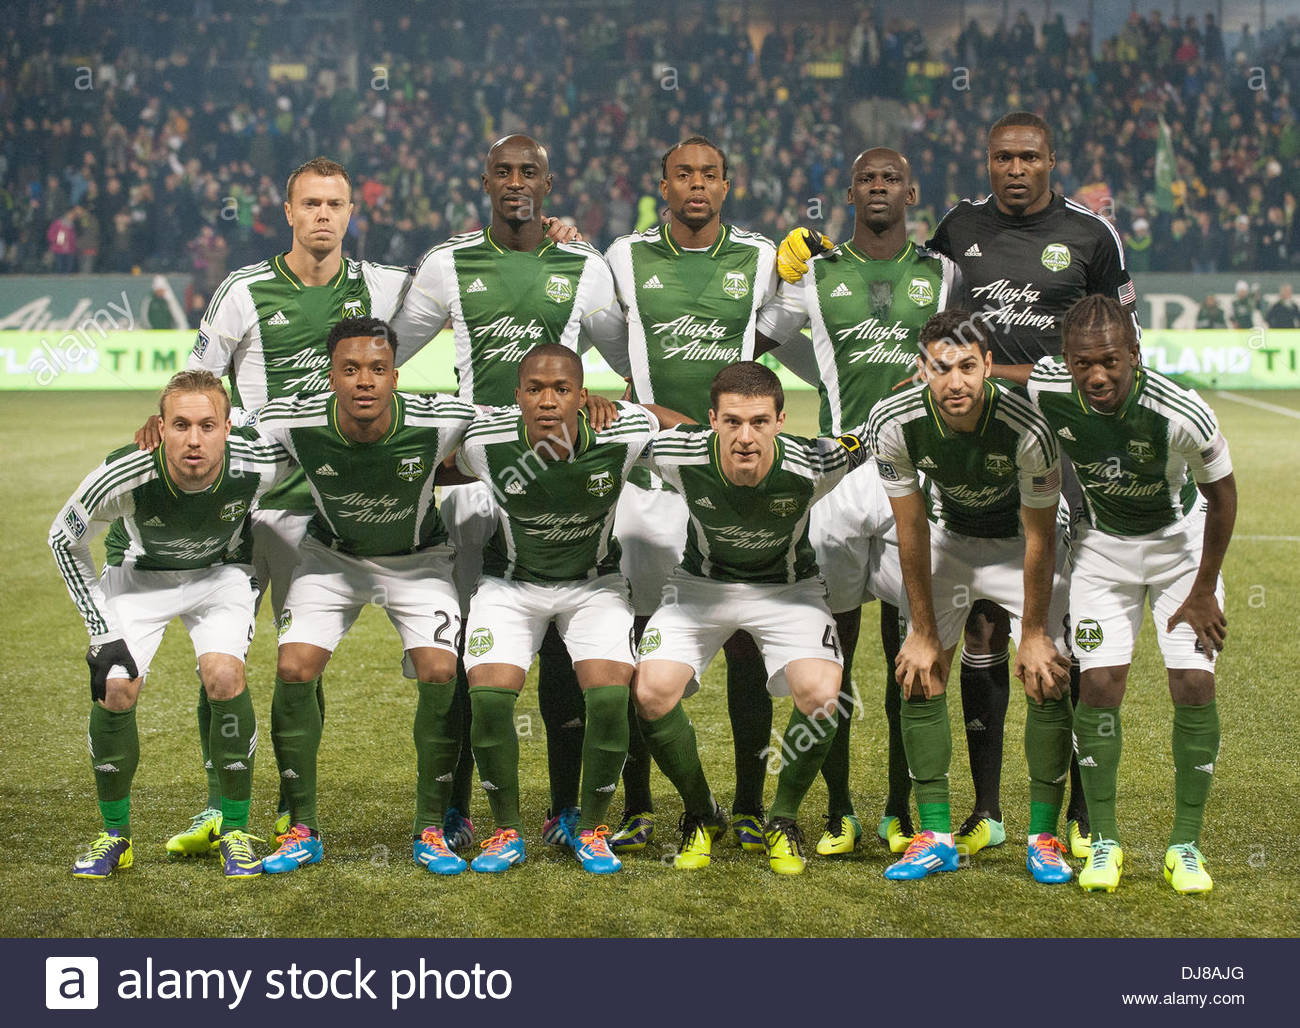 Portland, Oregon, US, . 24th Nov, 2013. tha Portland Timbers starting lineup. Real Salt Lake defeated Portland Timbers 1-0 to win the MLS Western Championship. The Timbers played host to RSL at Portland's Jeld-Wen Field to a sell out crowd. Credit:  Ken Hawkins/ZUMAPRESS.com/Alamy Live News - Stock Image